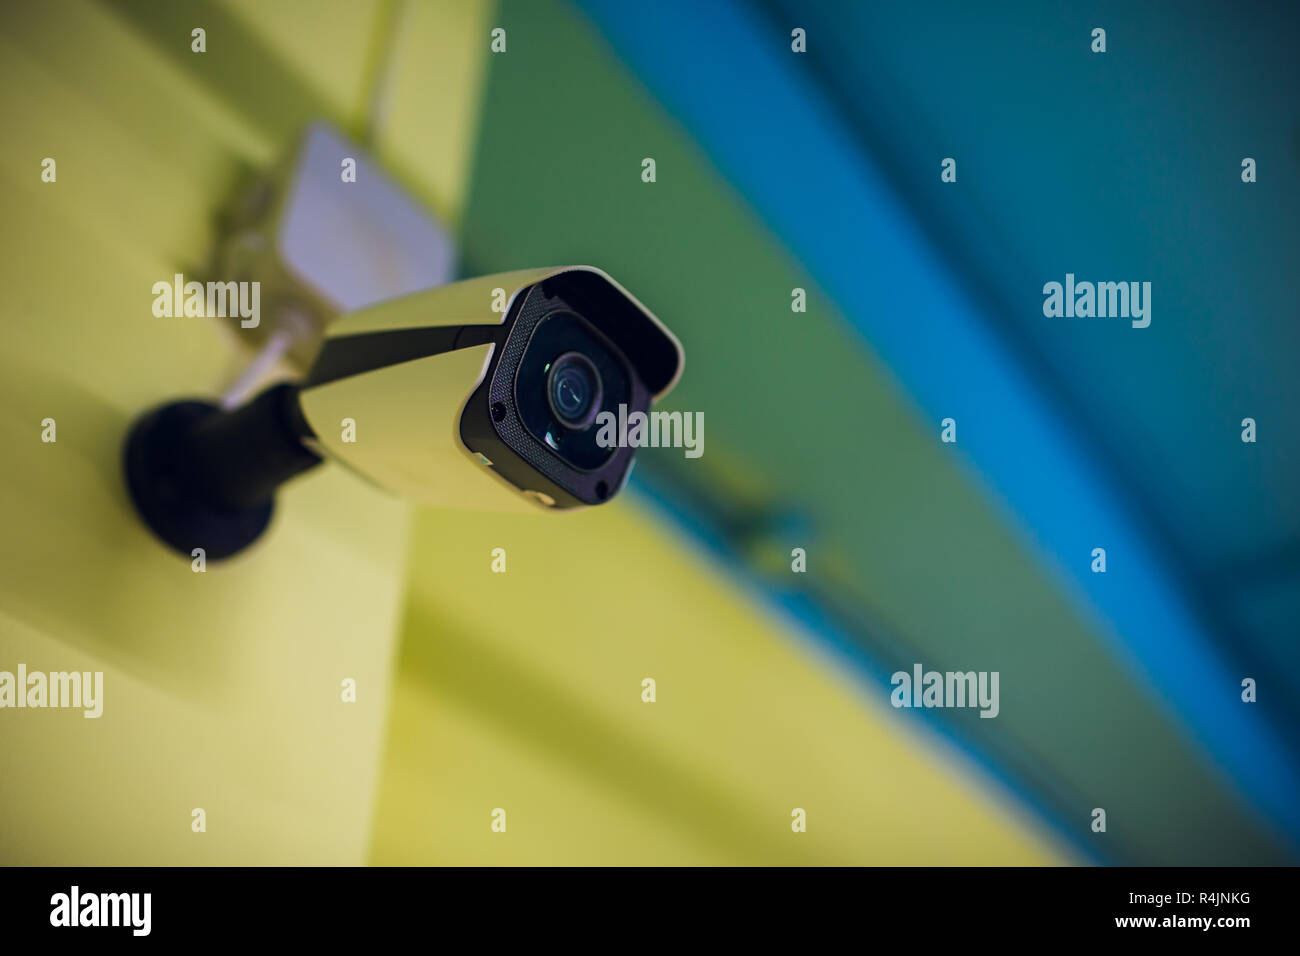 Modern CCTV camera on a wall. A blurred night cityscape background. Concept of surveillance and monitoring. Toned image double exposure mock up. - Stock Image